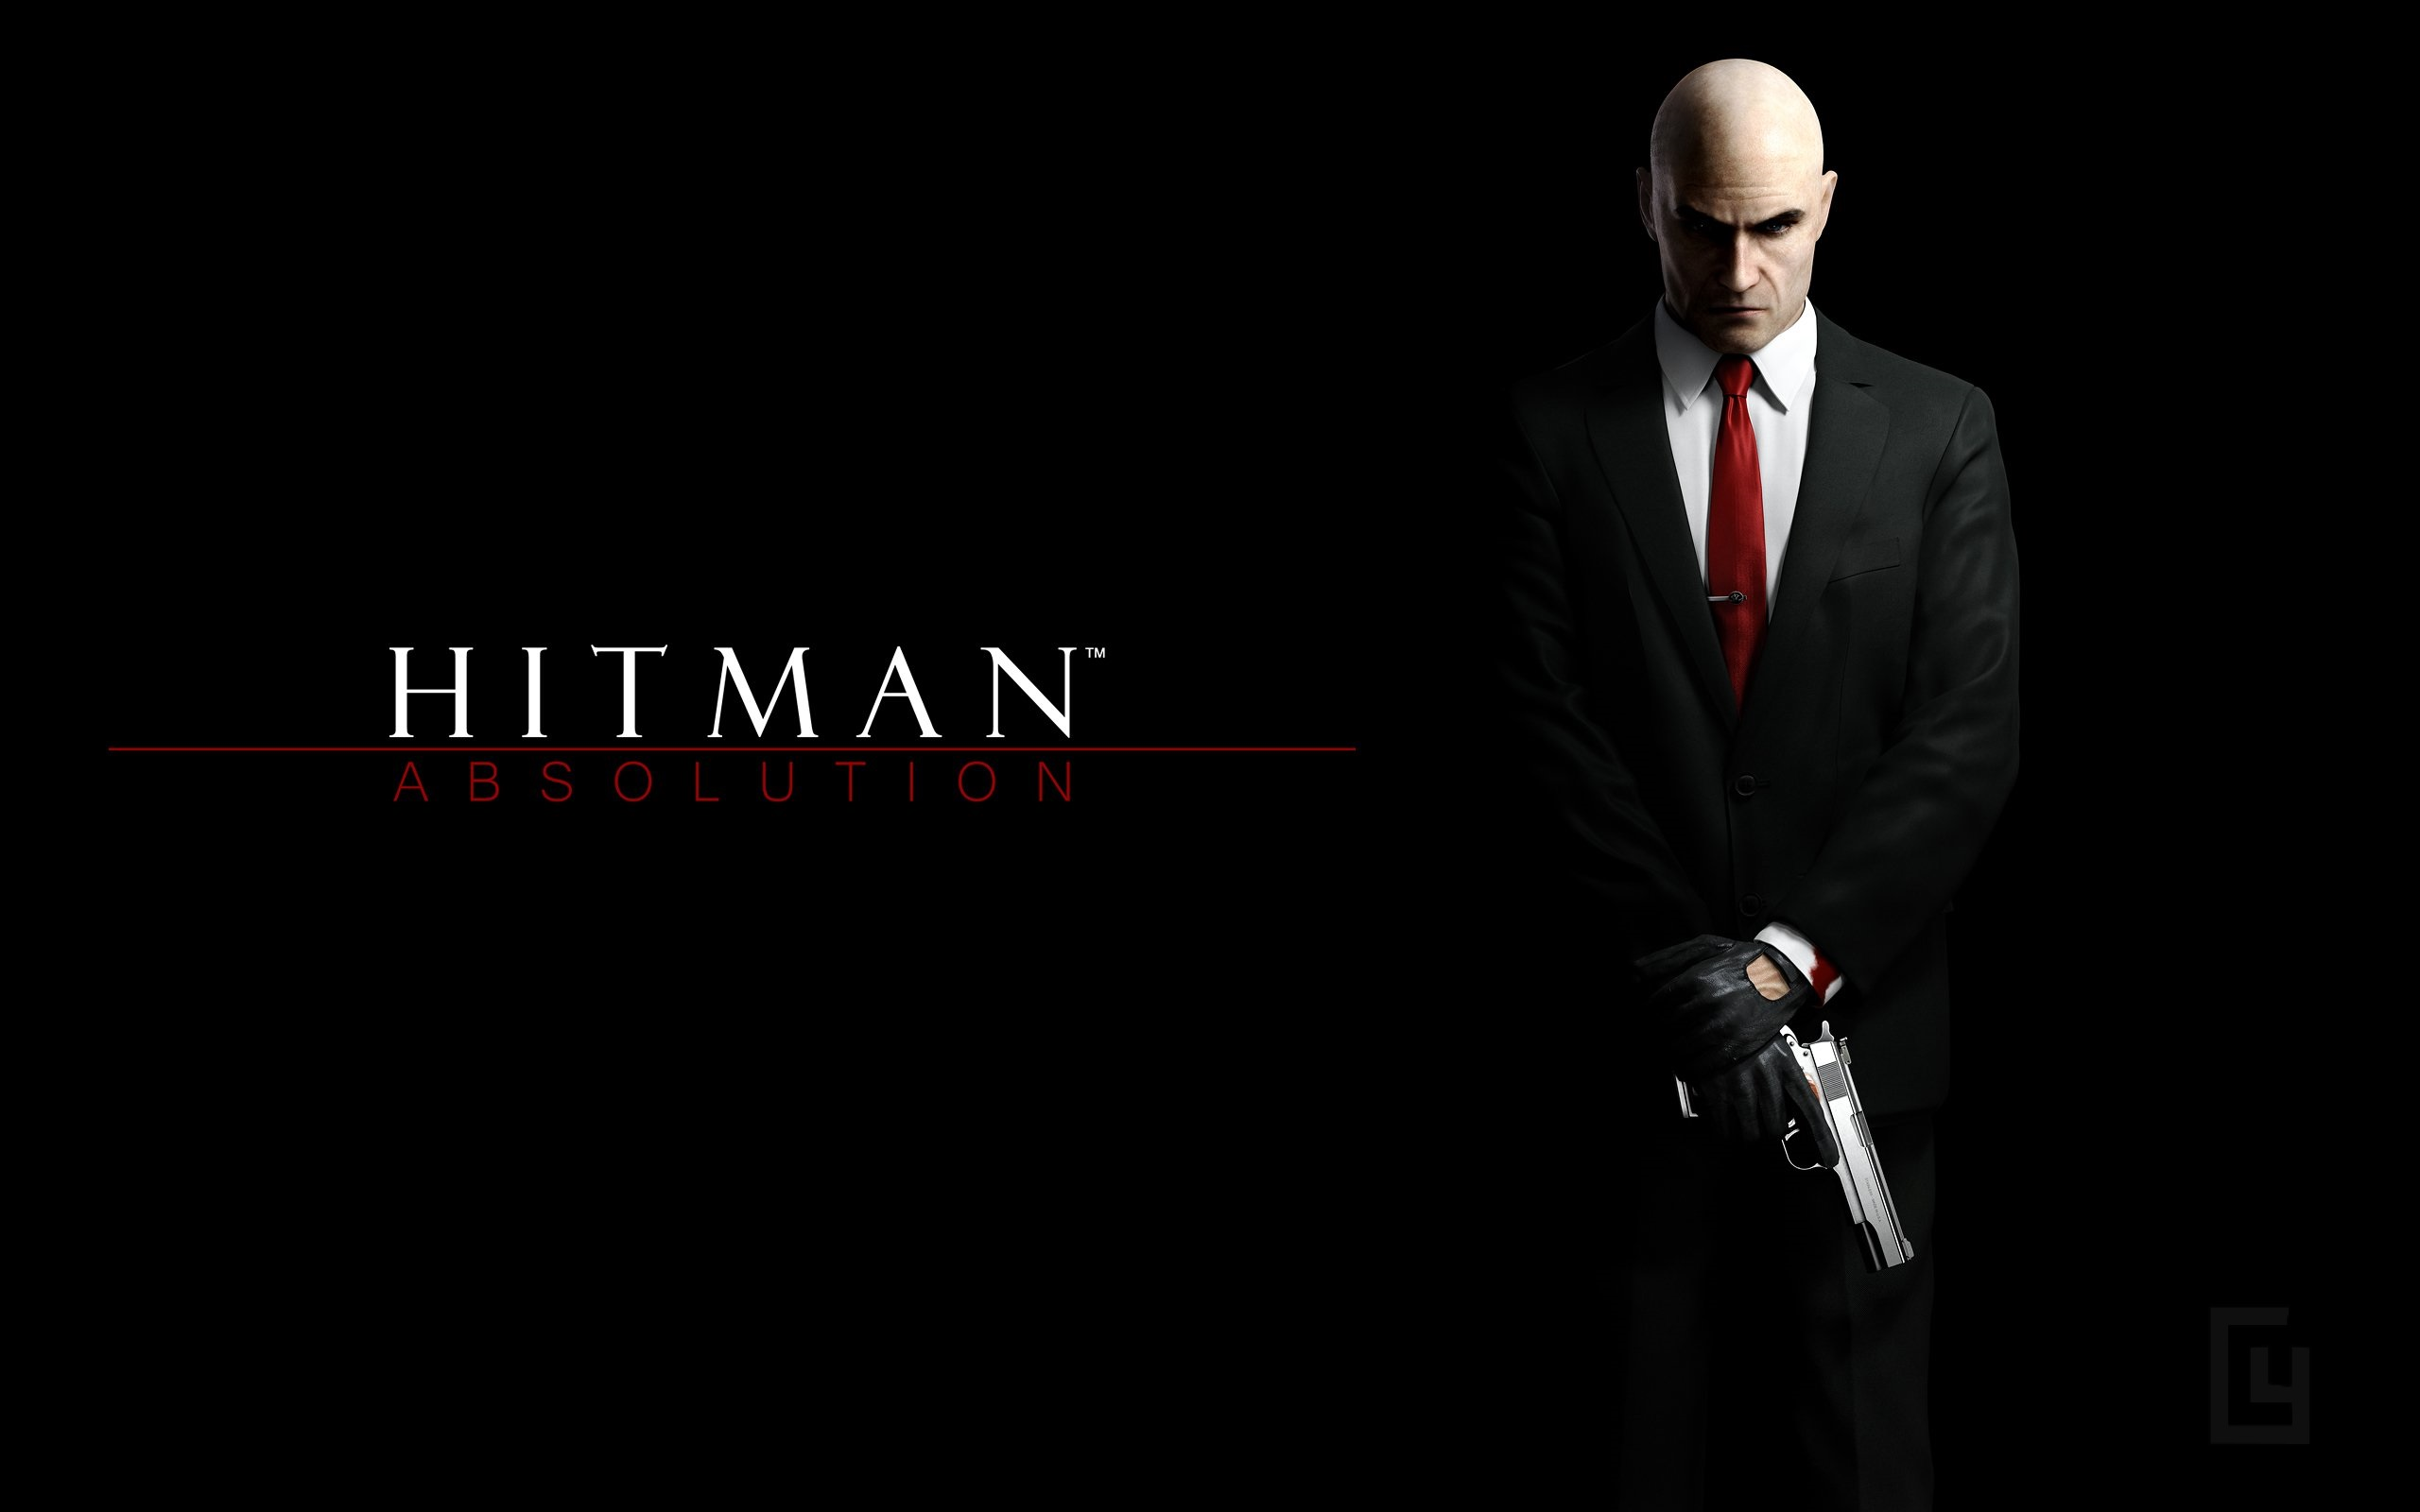 Hitman: Absolution – Behind the scenes